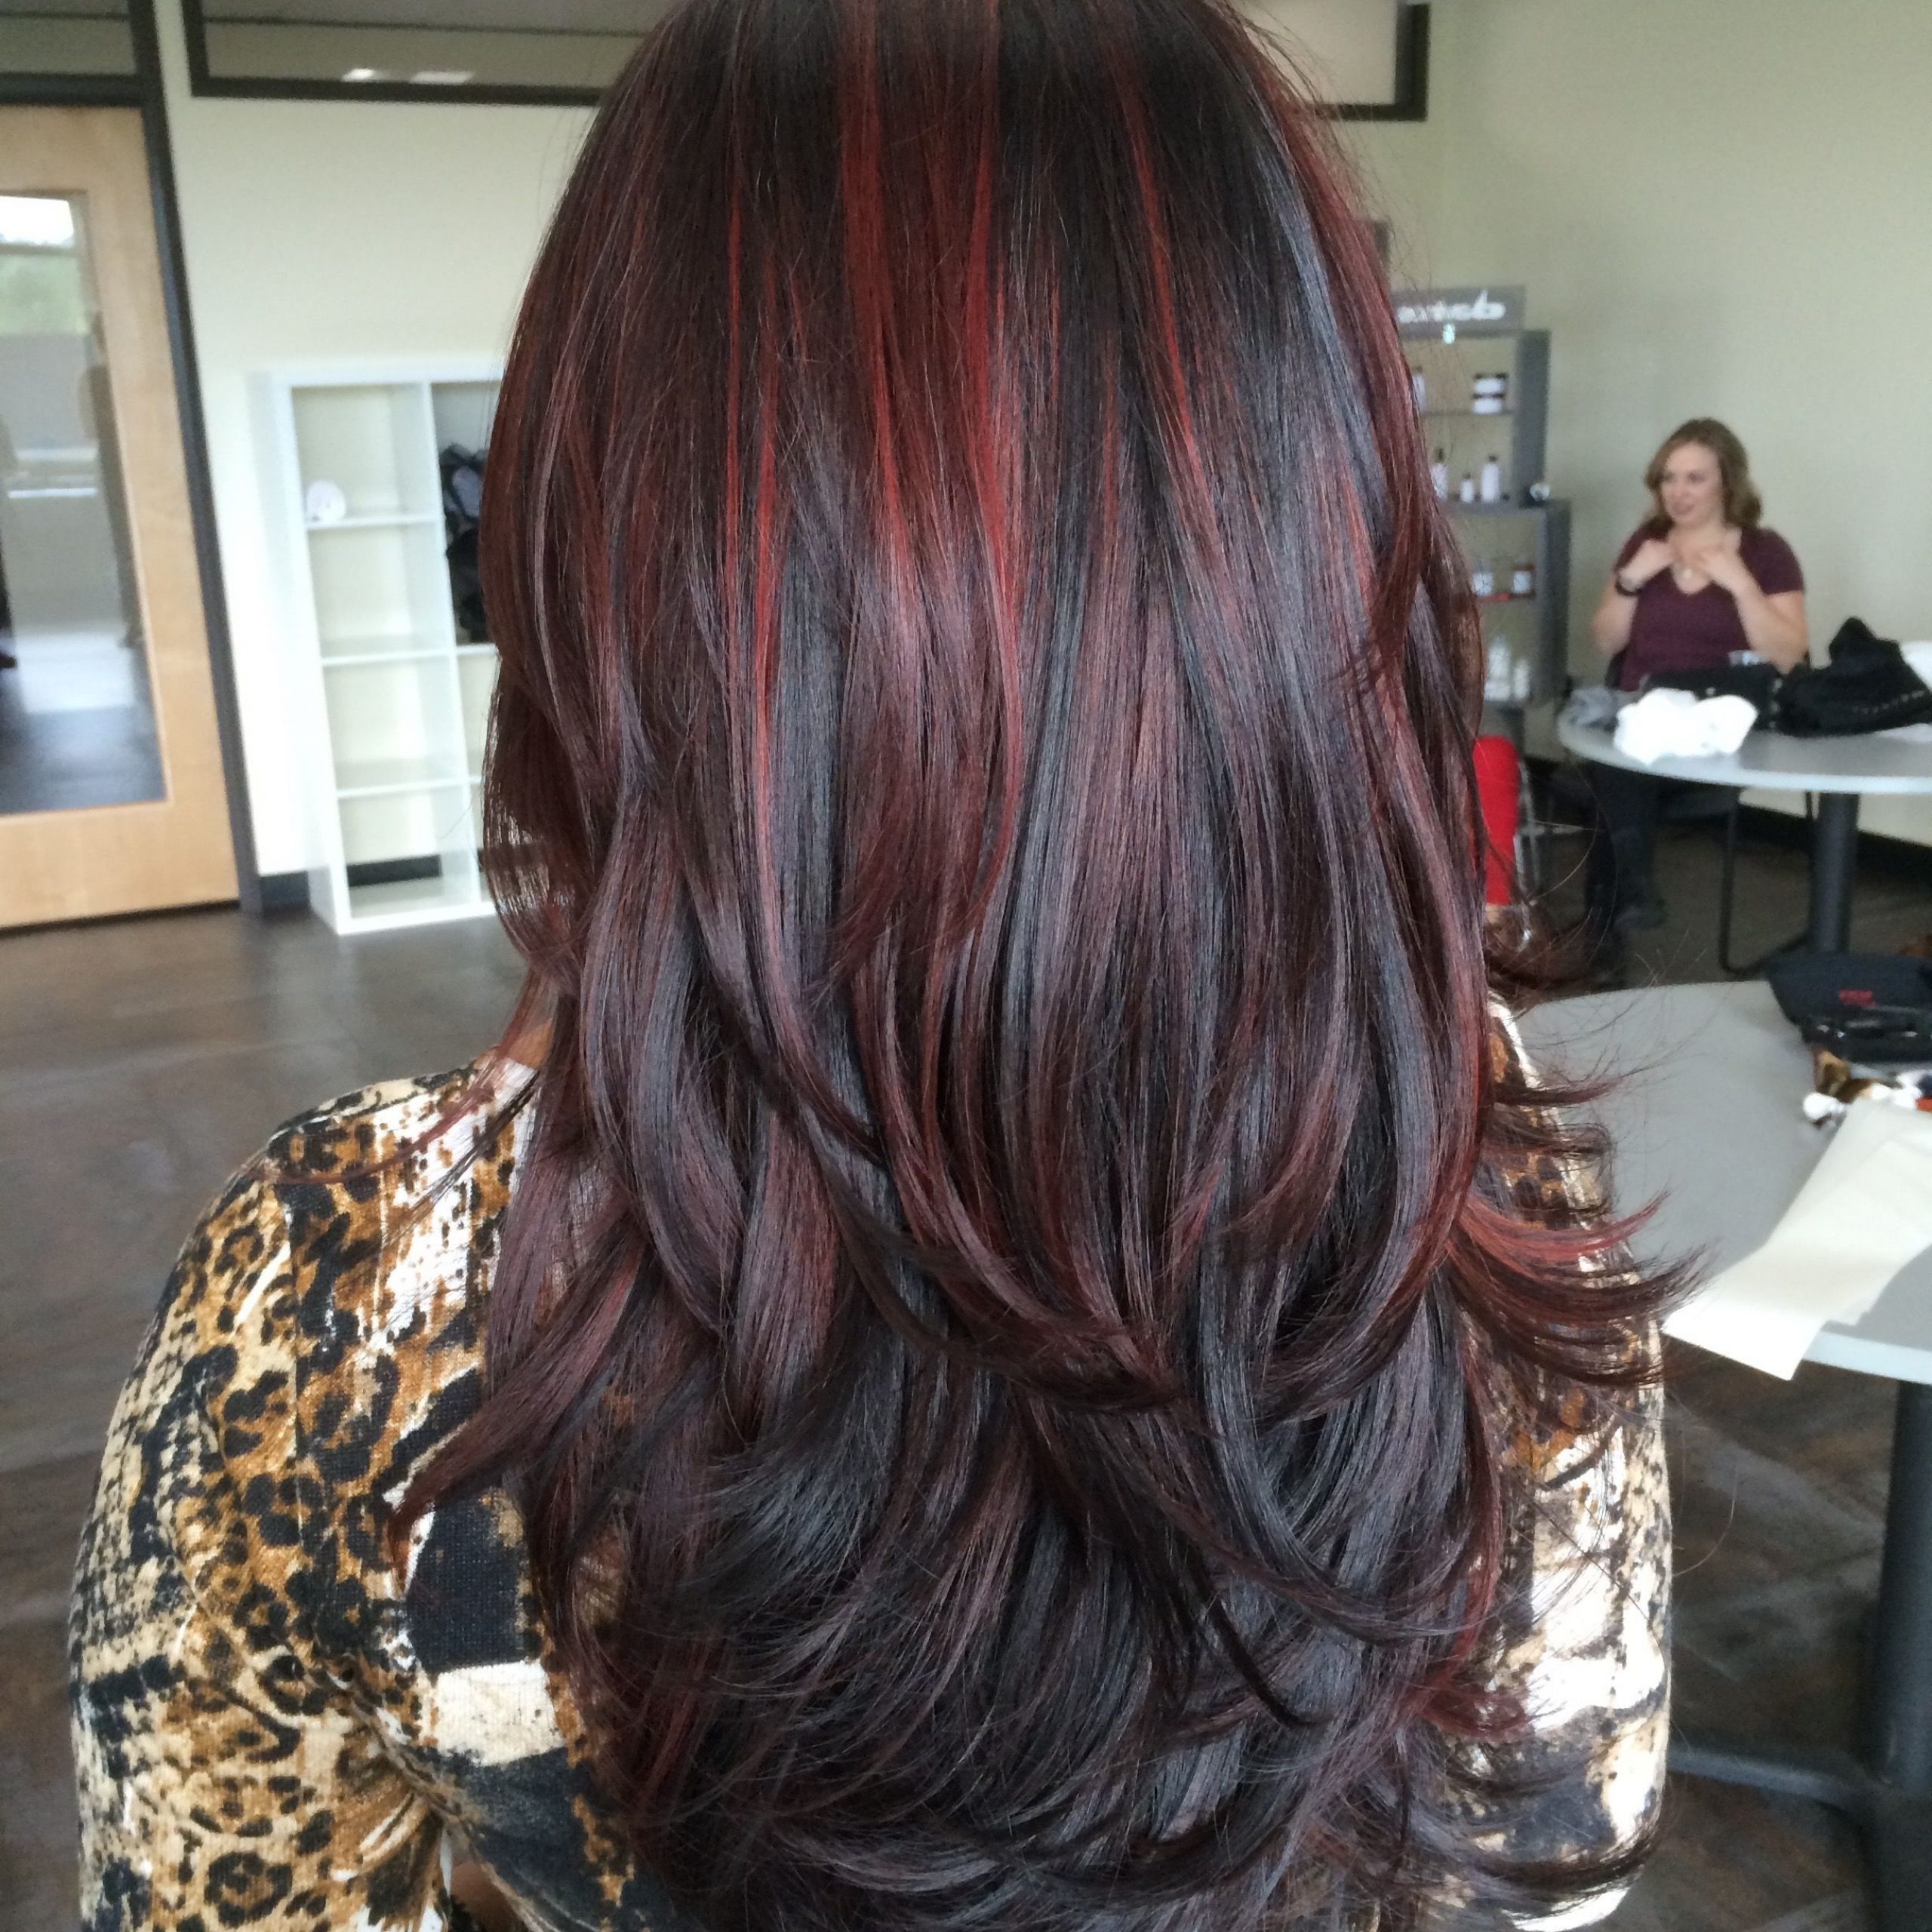 Pin On Balayage & Beyond In Bright Red Balayage On Short Hairstyles (View 13 of 20)